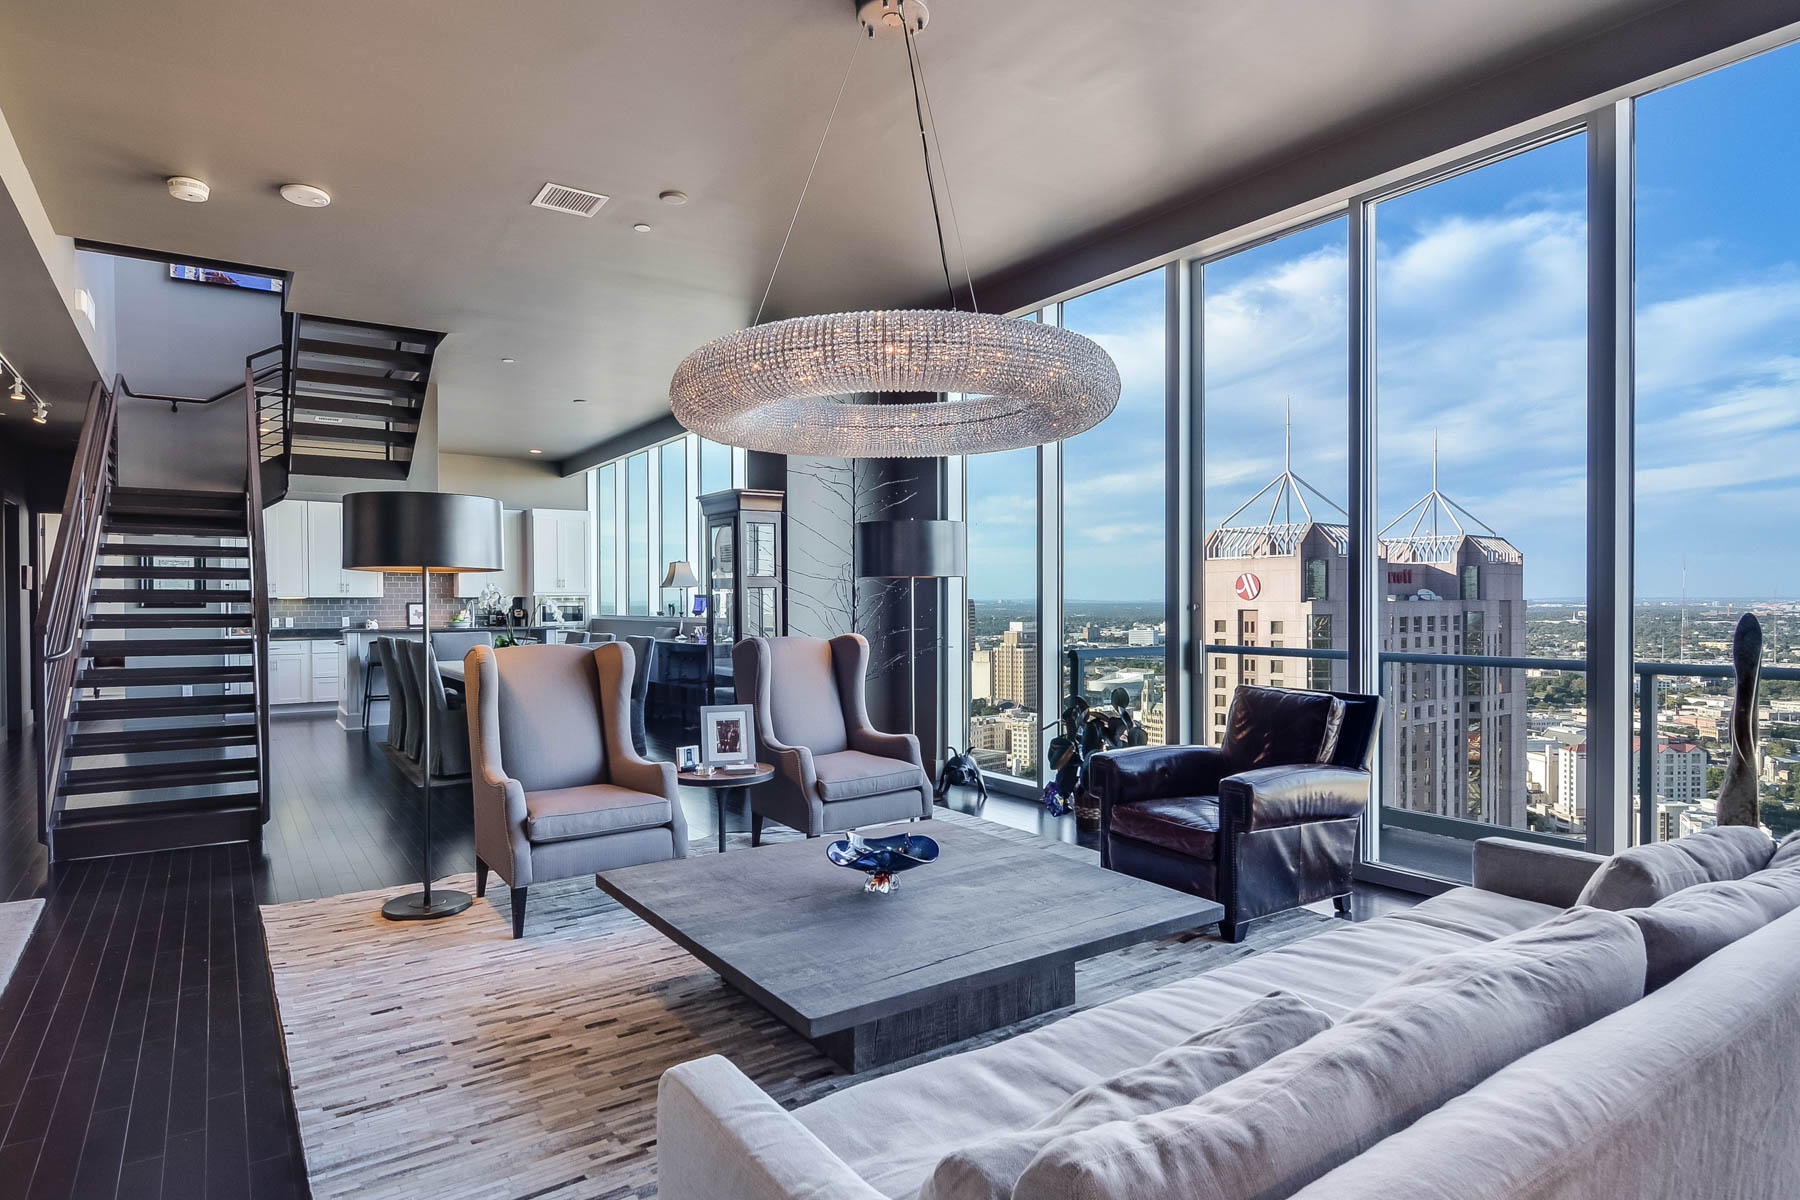 Appartement en copropriété pour l Vente à Flawless Penthouse with San Antonio Skyline Views 610 E Market St 3306 Alteza, San Antonio, Texas, 78205 États-Unis